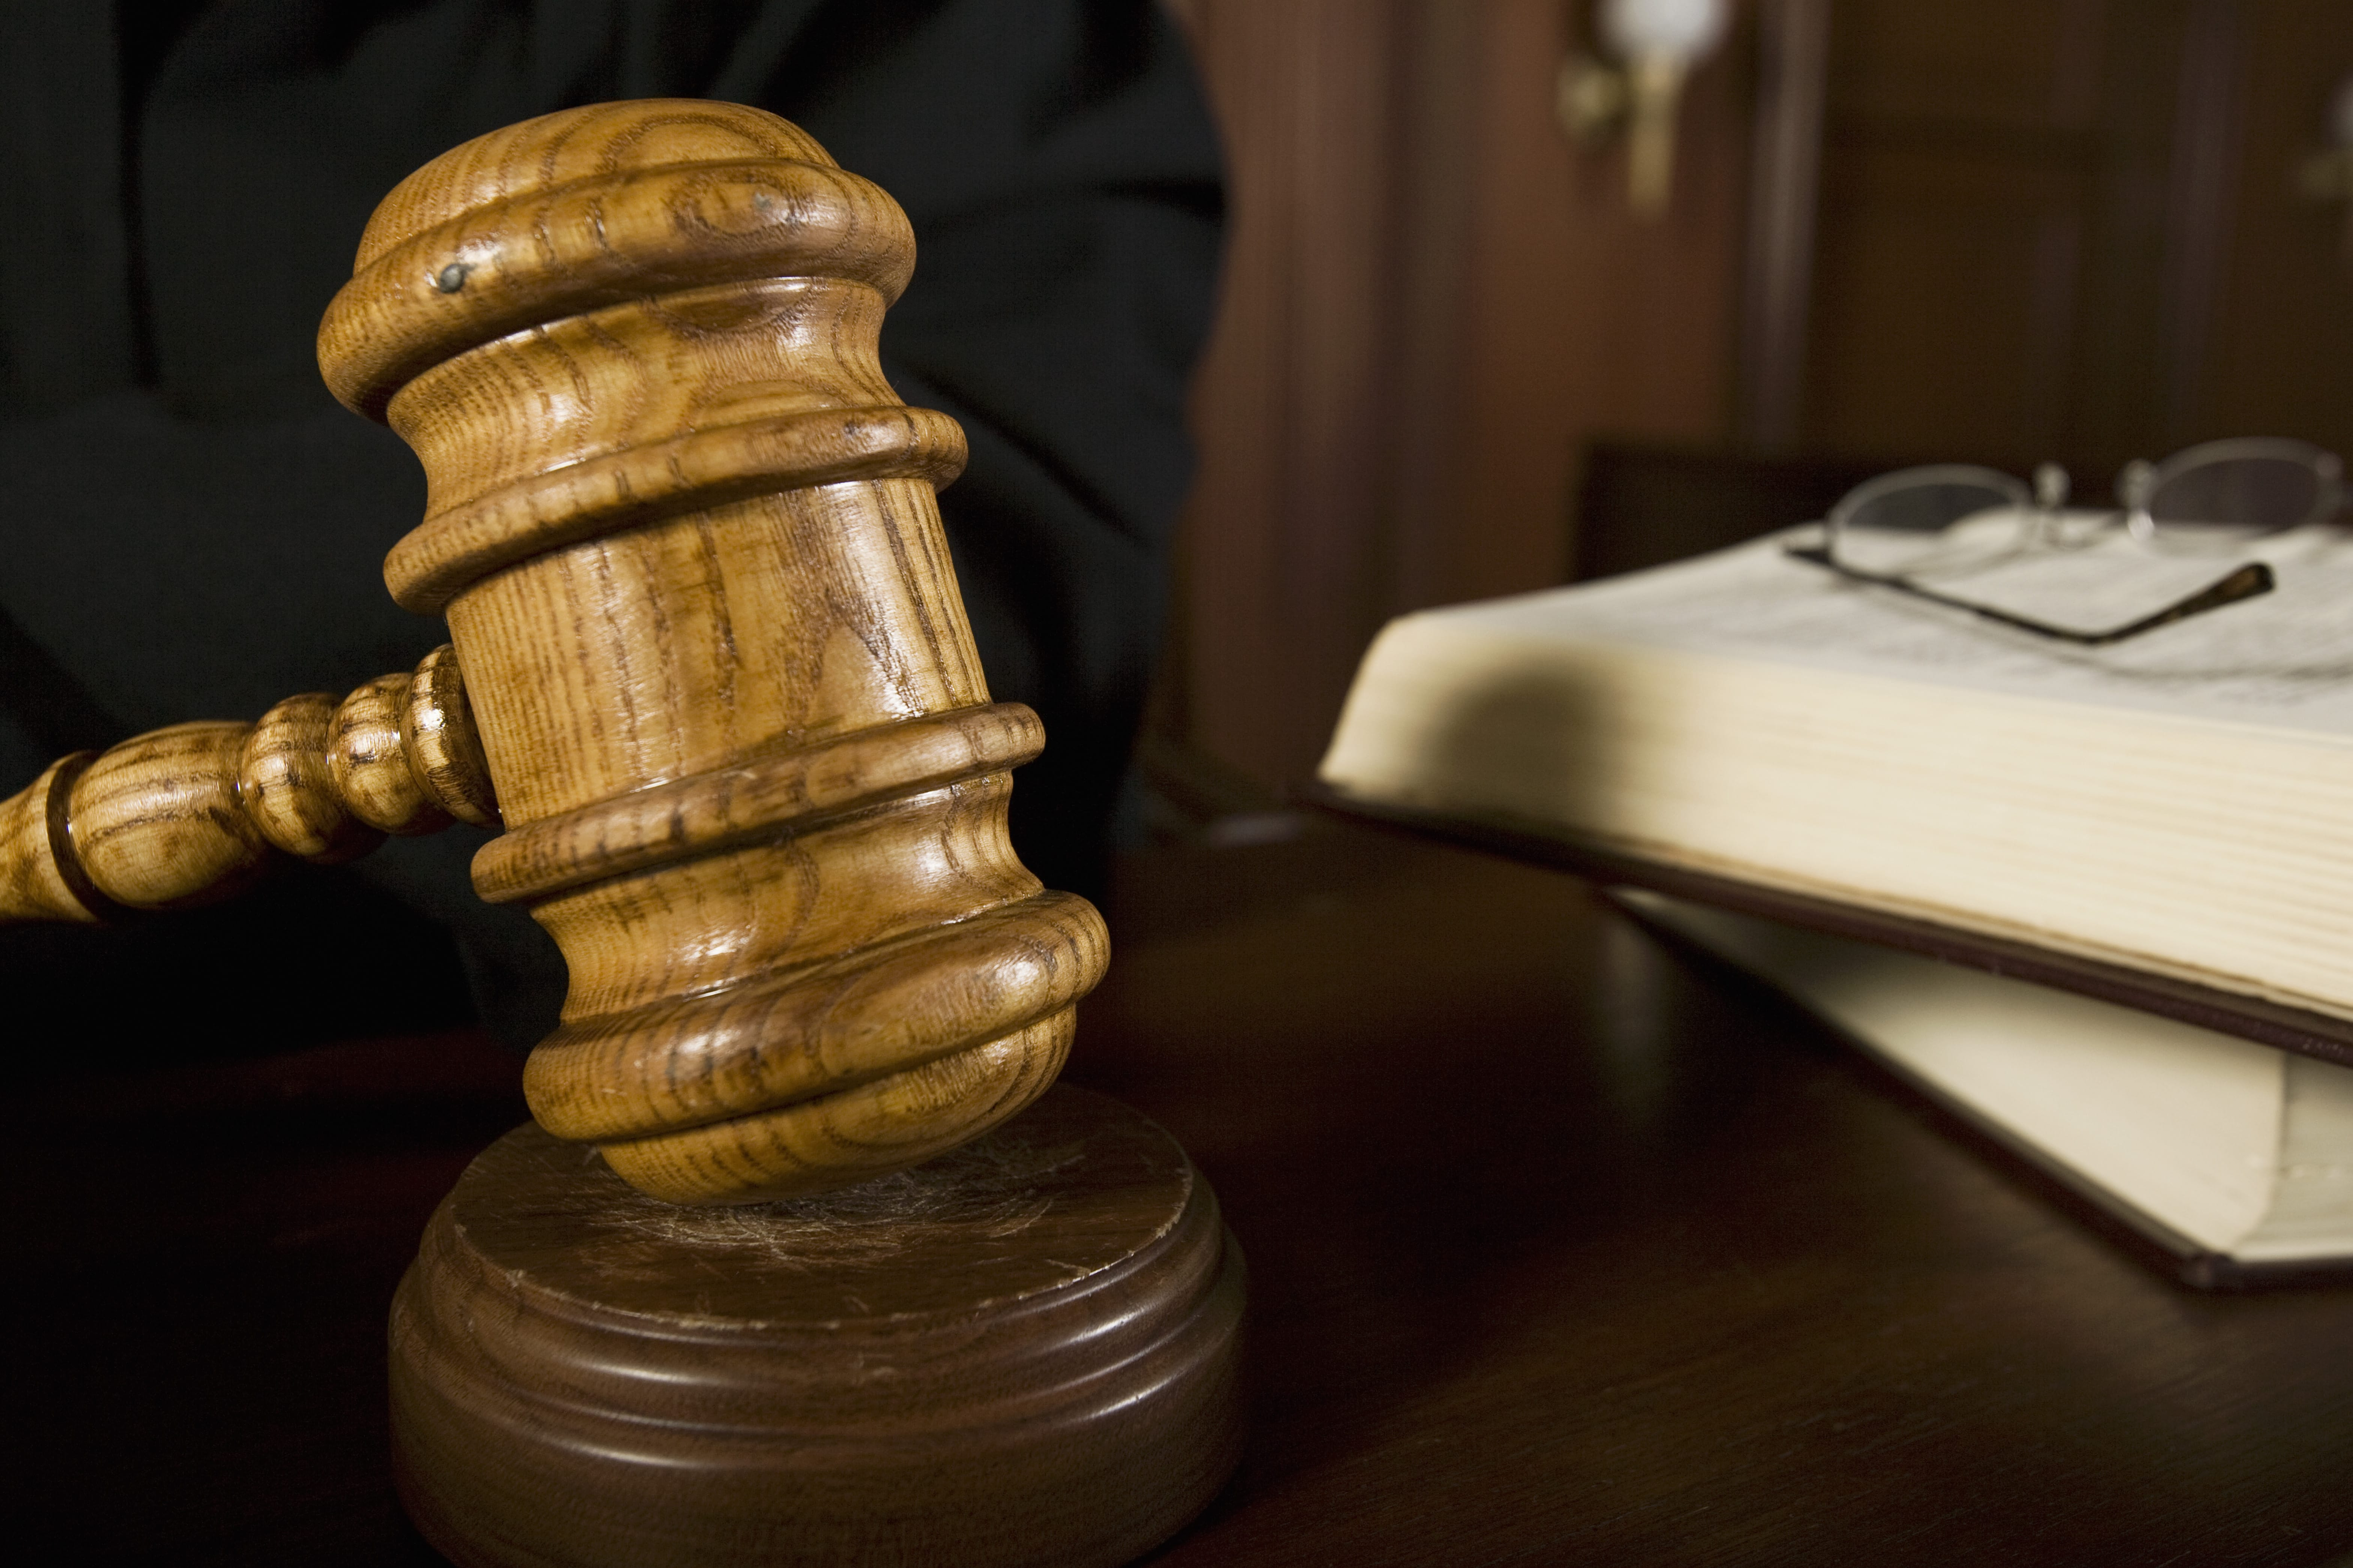 Judge using gavel in court, close-up